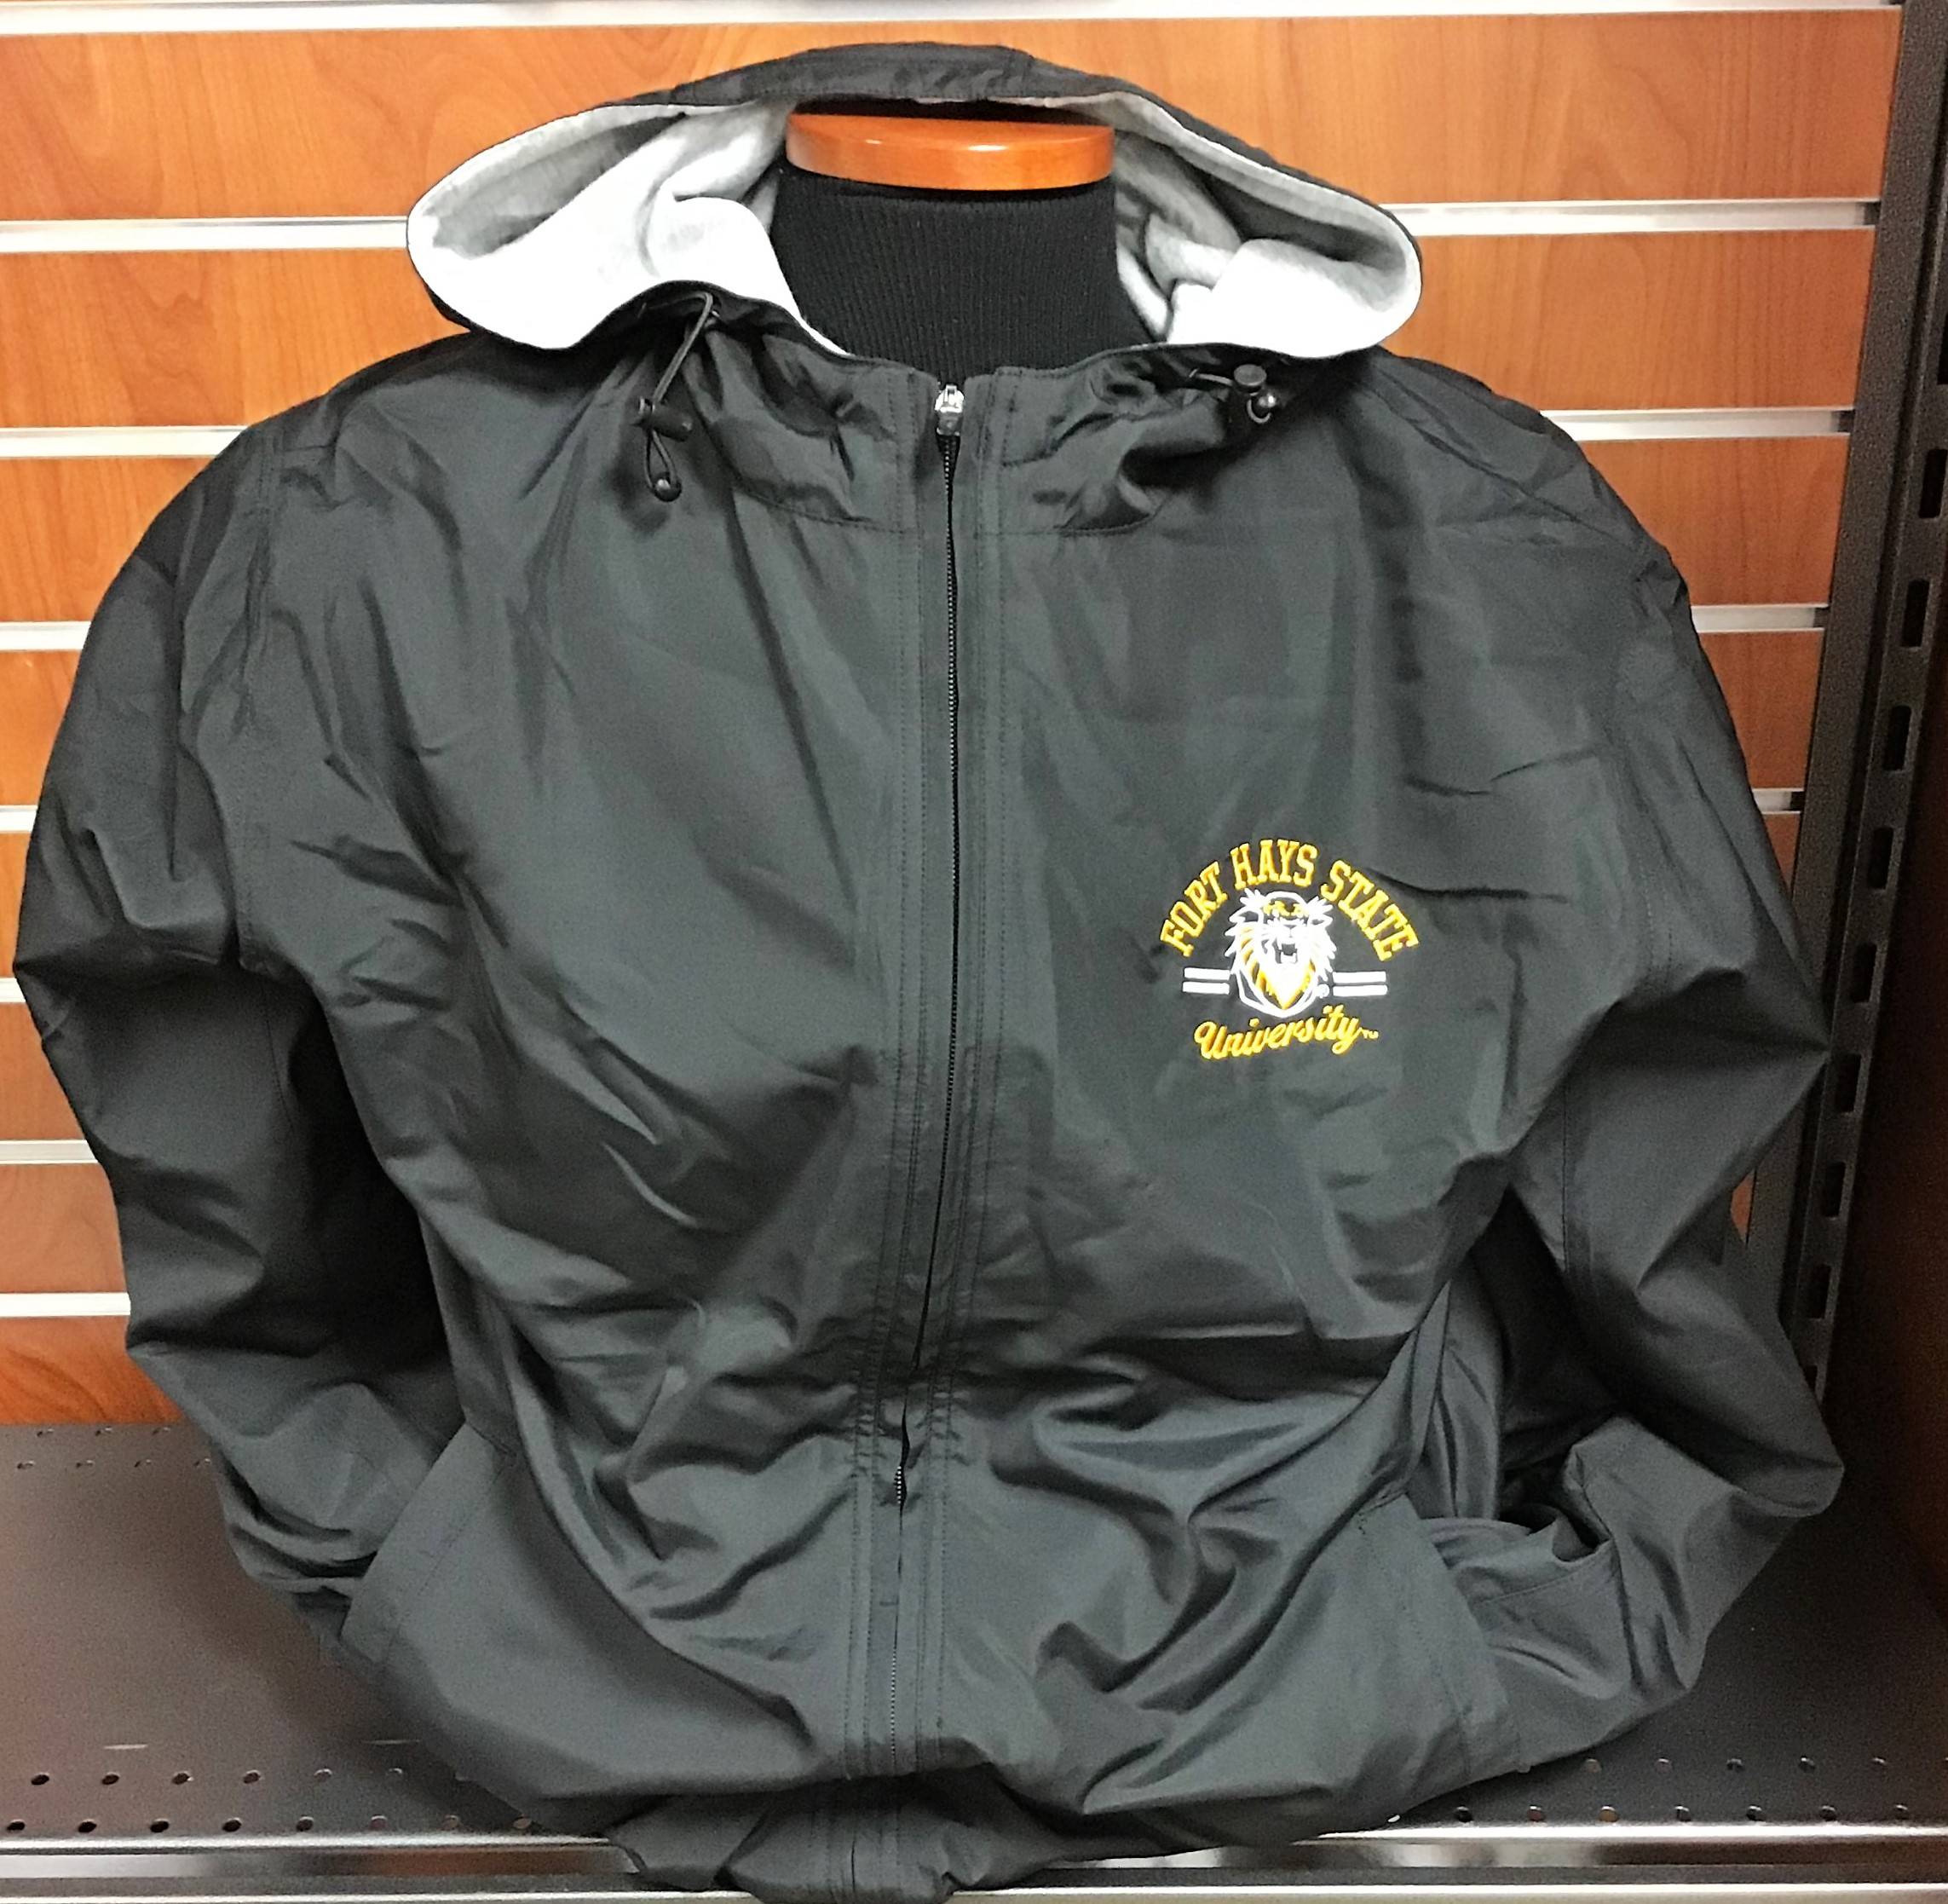 Image for the Full Zip Liberty Jacket Black MV Sport product